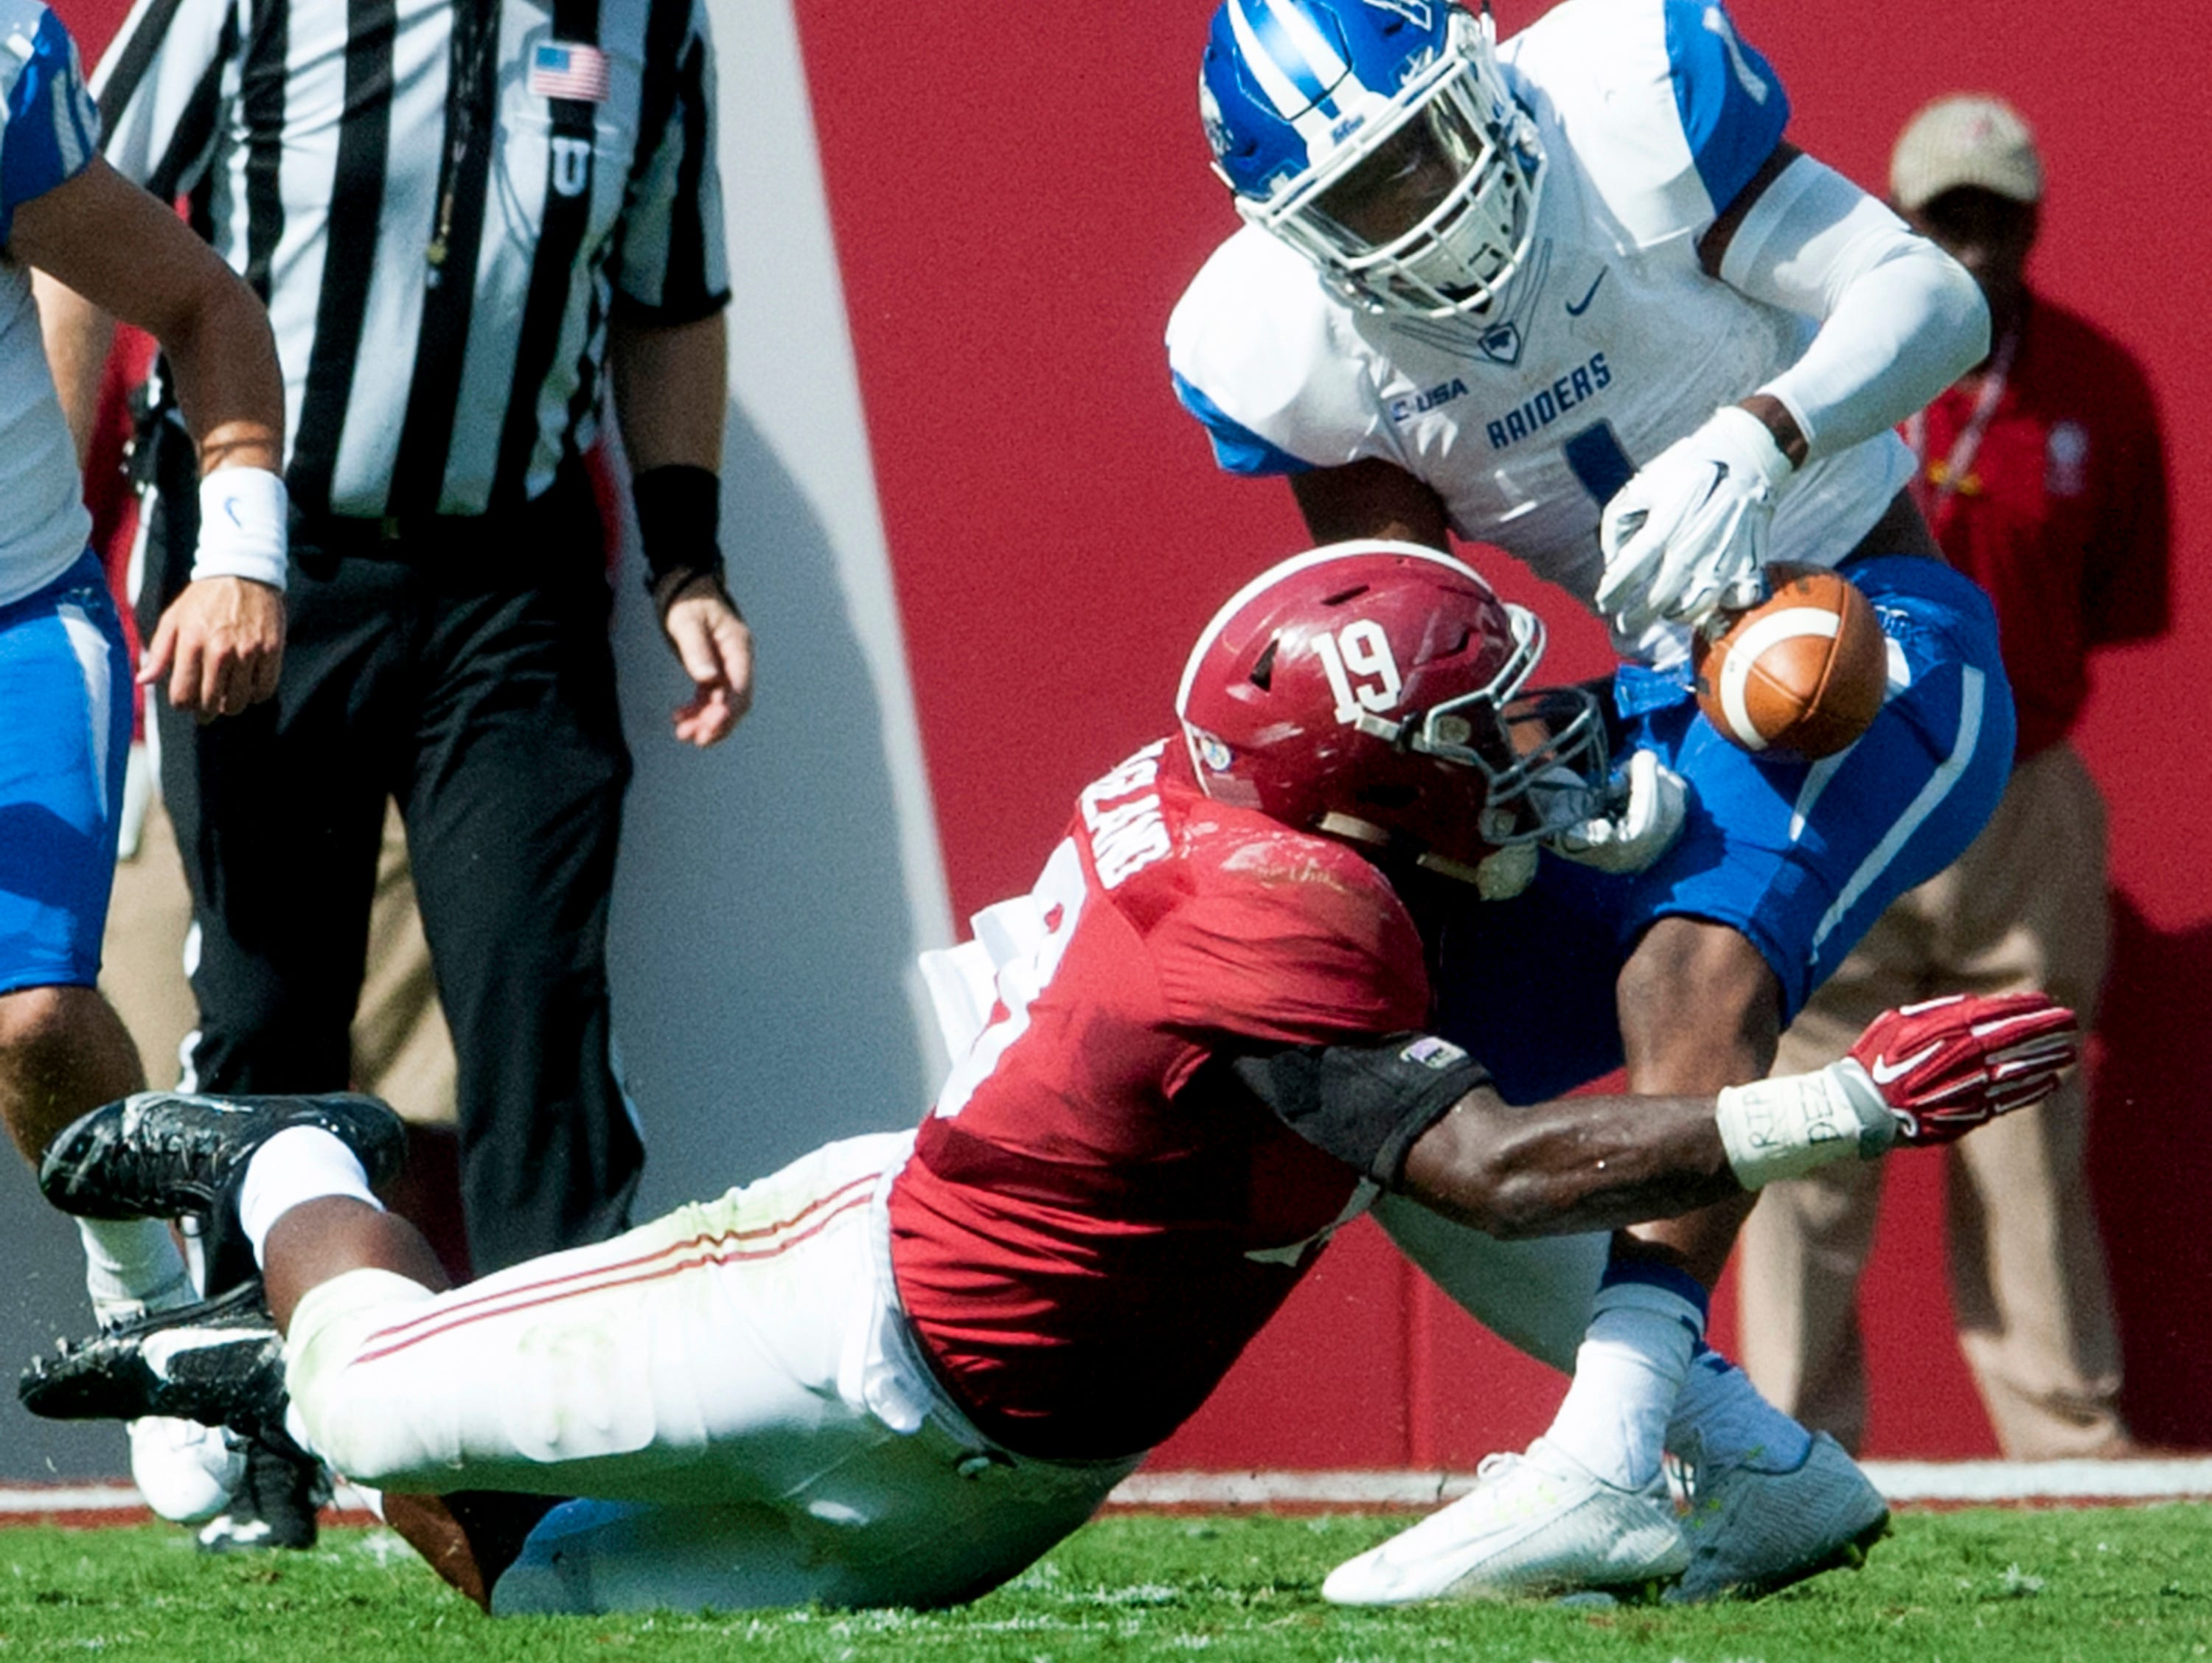 Alabama linebacker Reggie Ragland (19) causes a fumble by Middle Tennessee's Shane Tucker (1) during the first half of an NCAA college football game, in Tuscaloosa, Ala., on Saturday, Sept. 12, 2015. (Mickey Welsh/The Montgomery Advertiser via AP) NO SALES; MANDATORY CREDIT